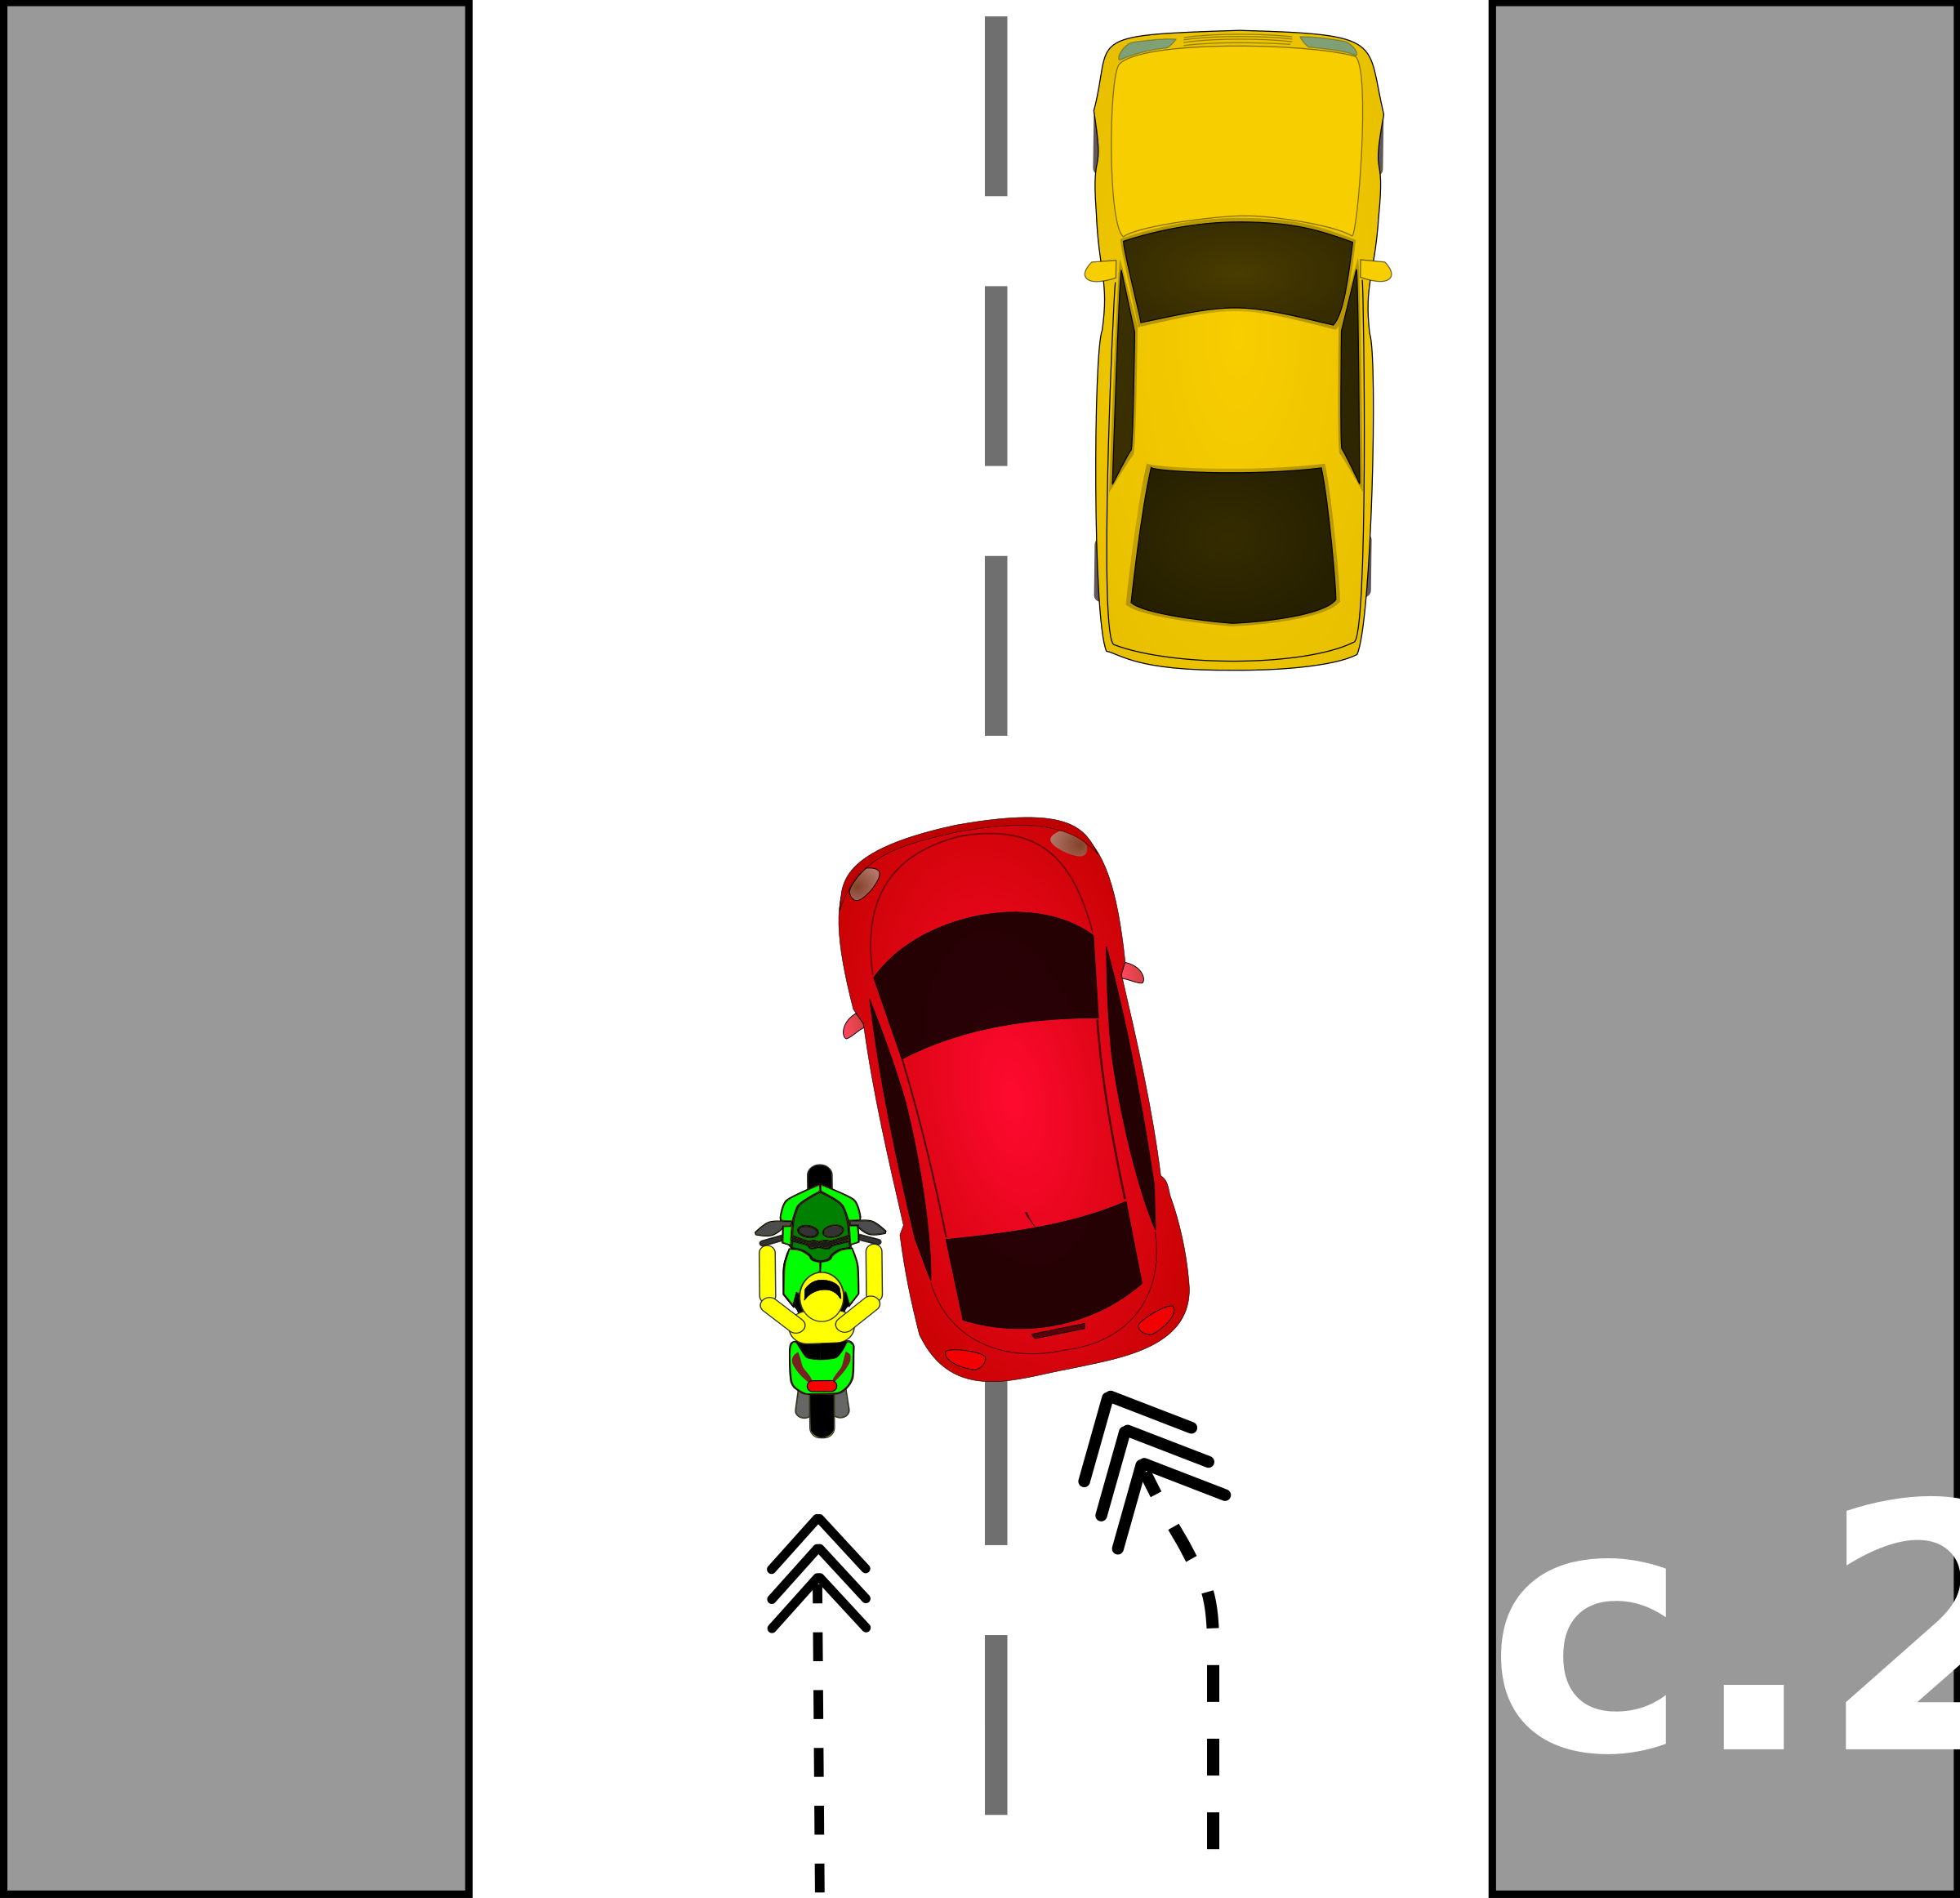 traffic accident pictograms c.2 by Gusta